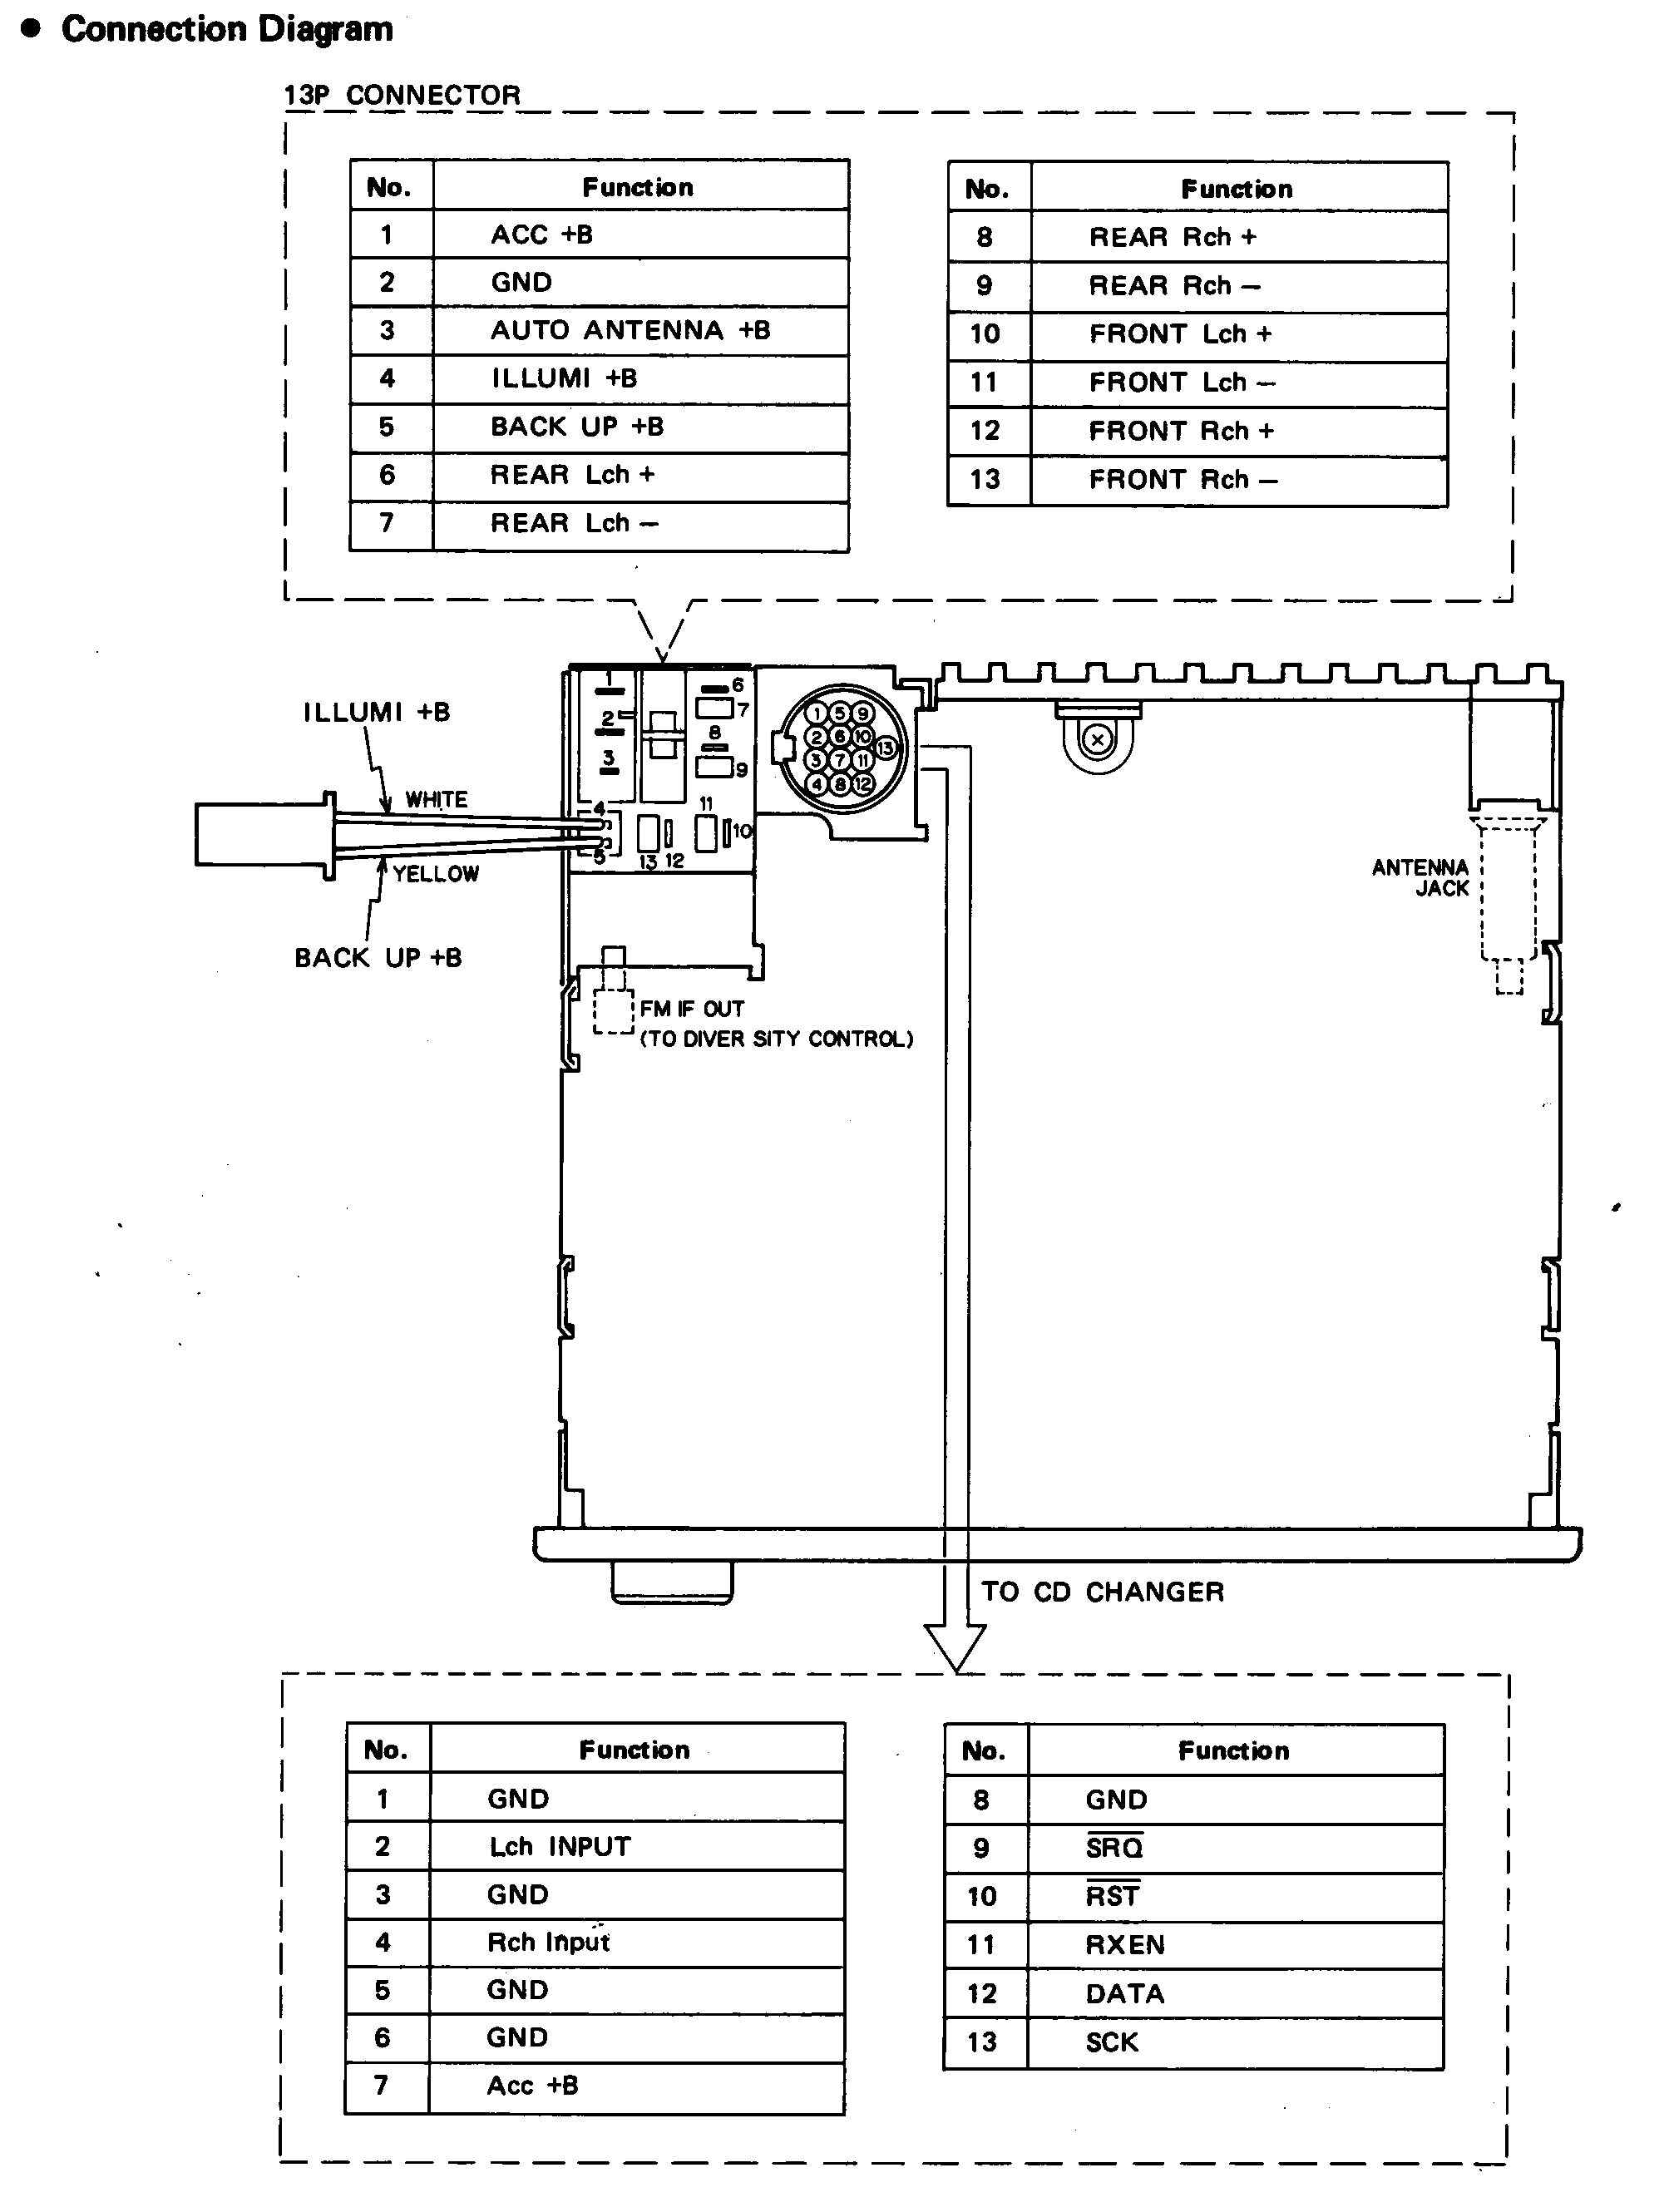 wiring diagram for alpine car stereo wiring image bmw stereo wiring diagram bmw wiring diagrams on wiring diagram for alpine car stereo